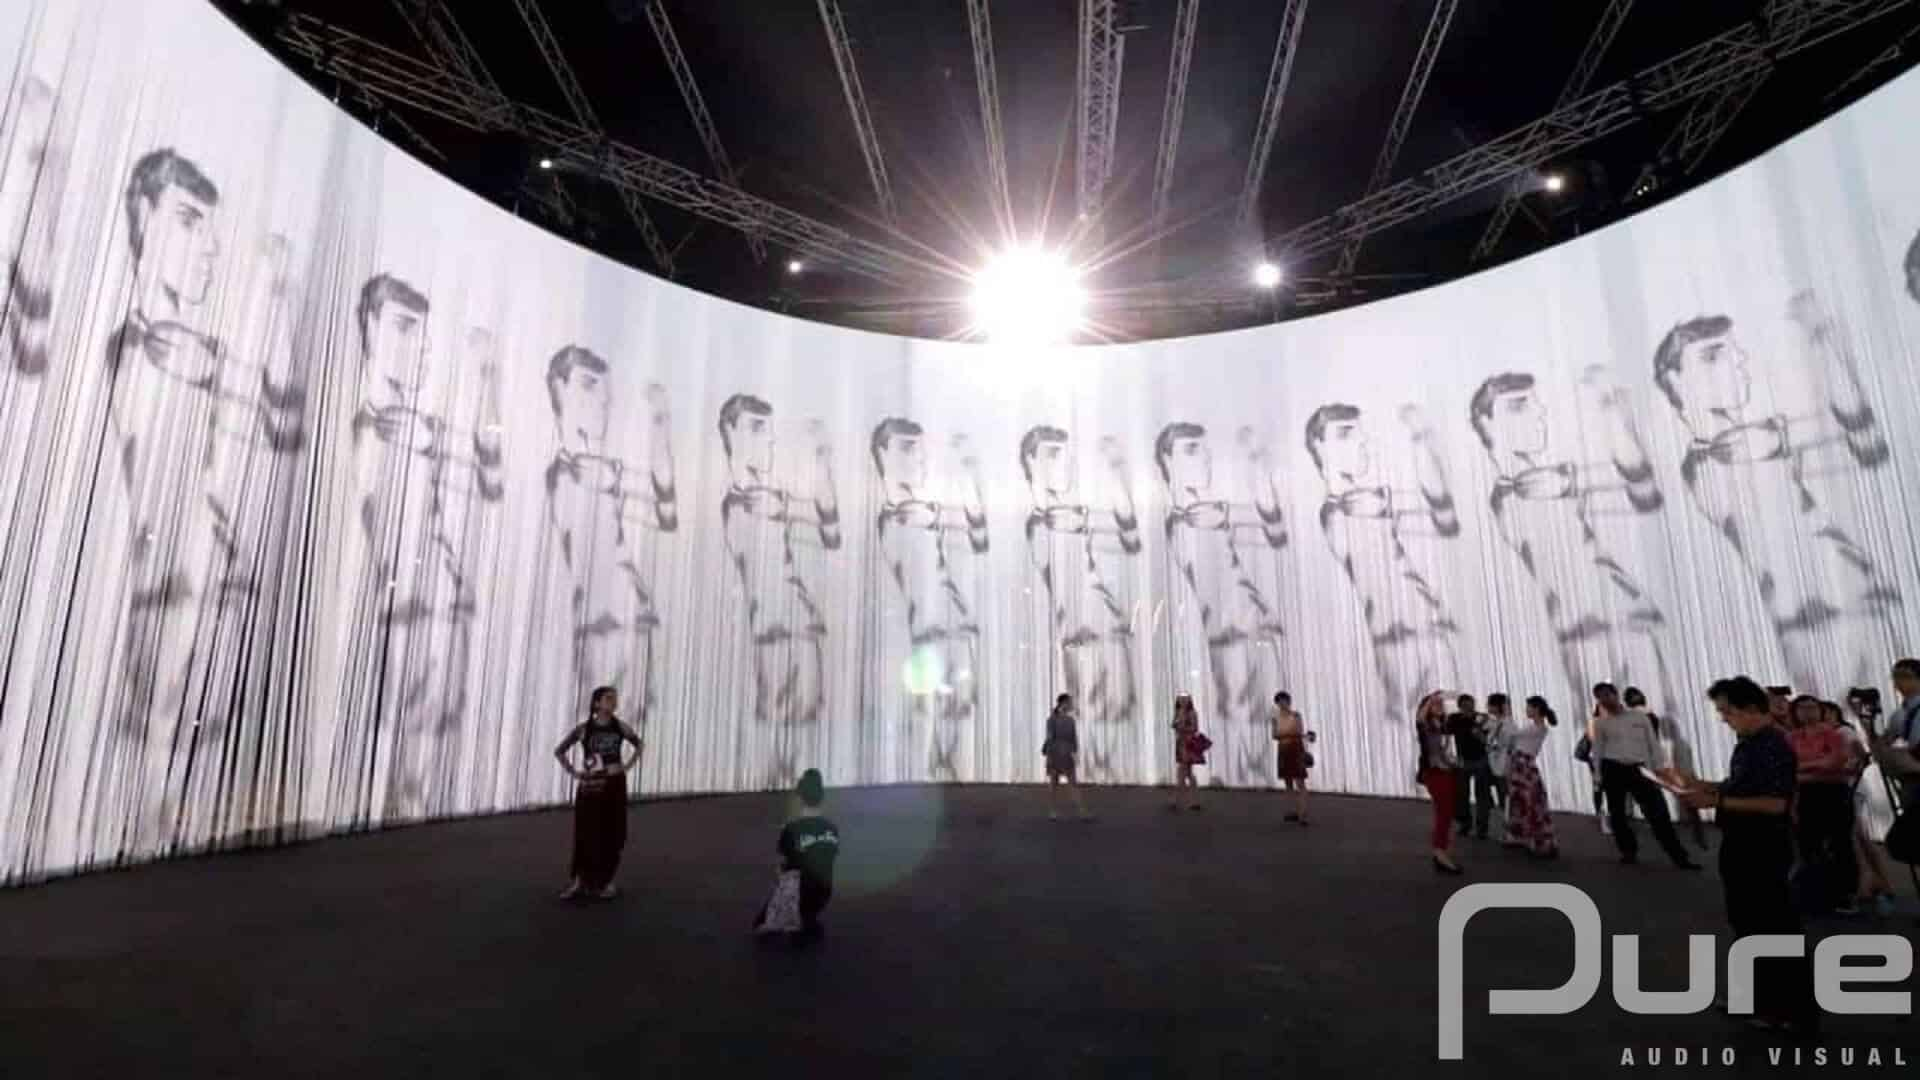 projection mapping company